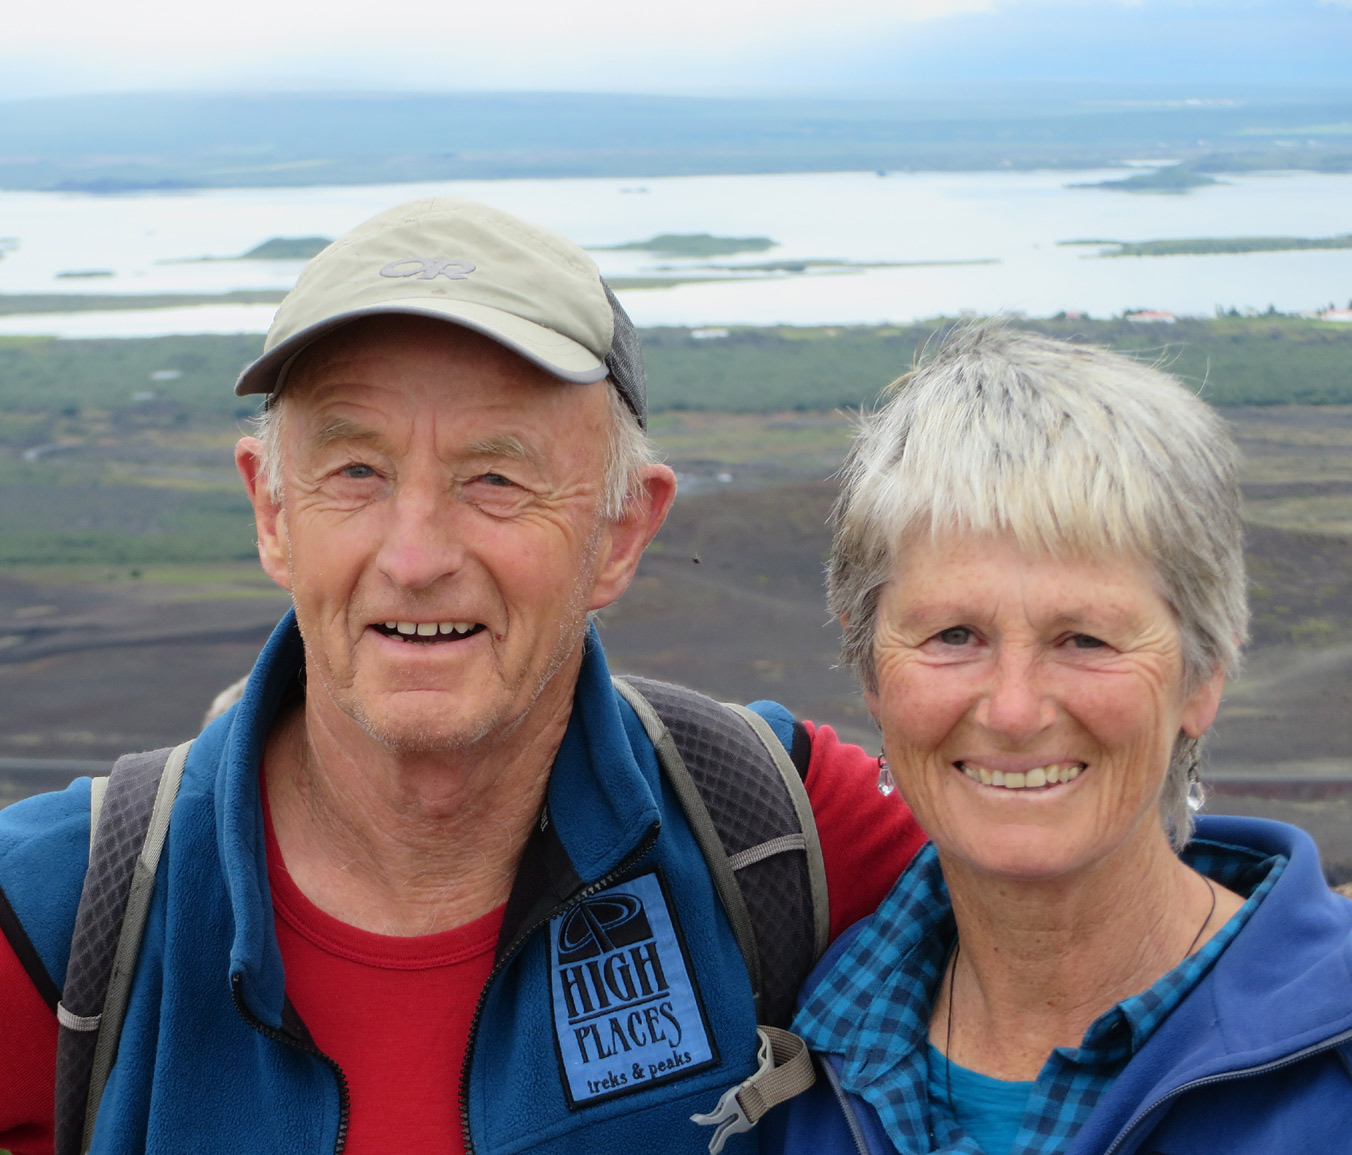 Bob & Mary Lancaster of High Places Ltd NZ